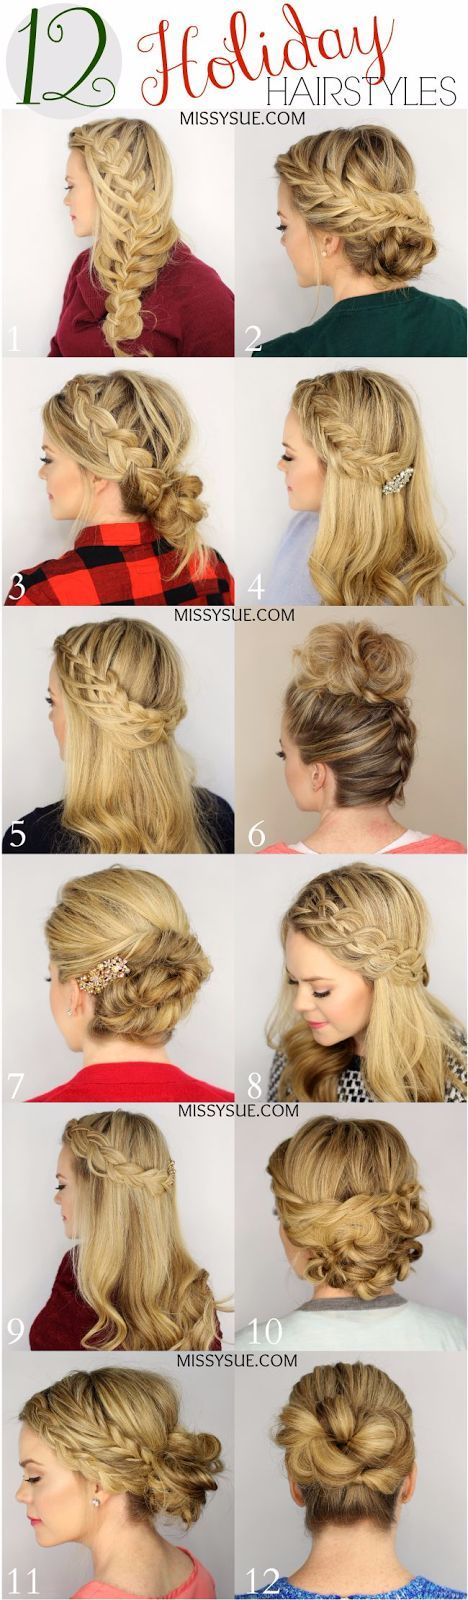 The 25+ best Holiday hairstyles ideas on Pinterest | Fun ...